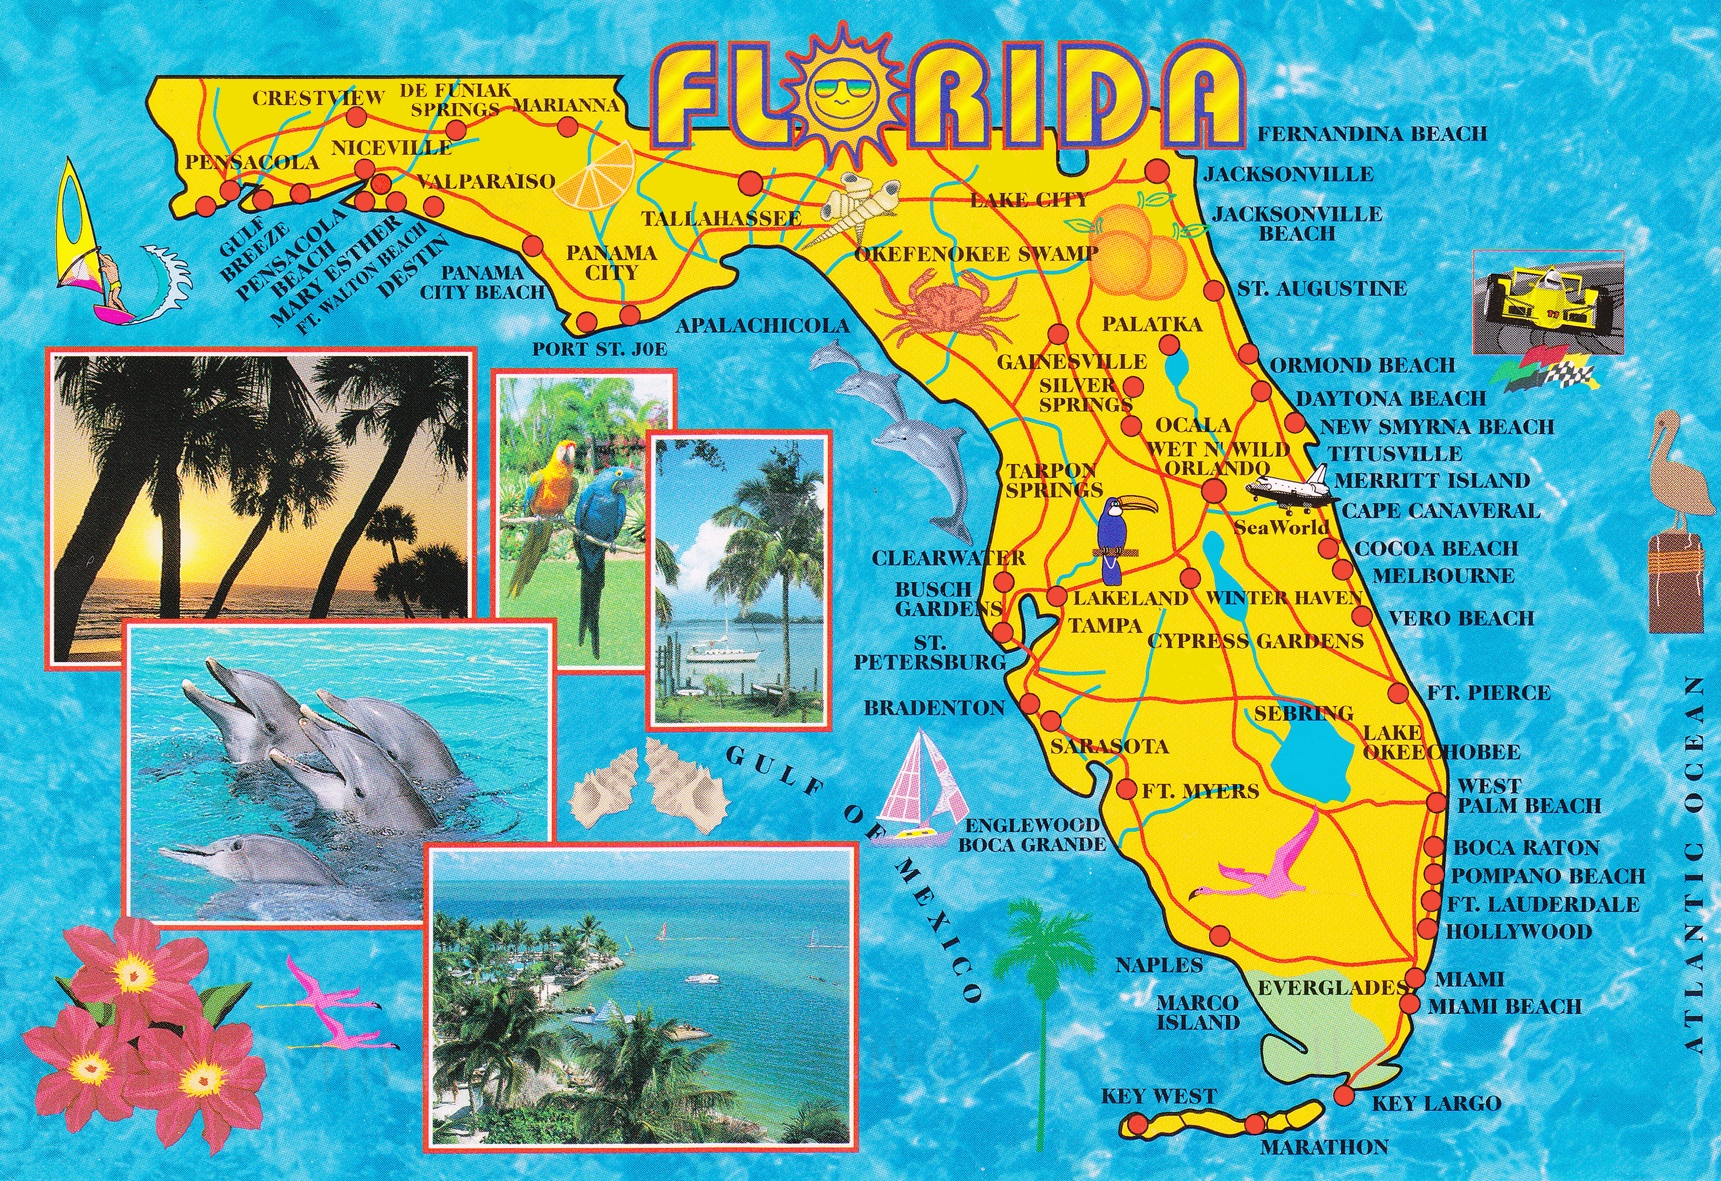 Illustrated Tourist Map Of Florida - Florida map ft pierce